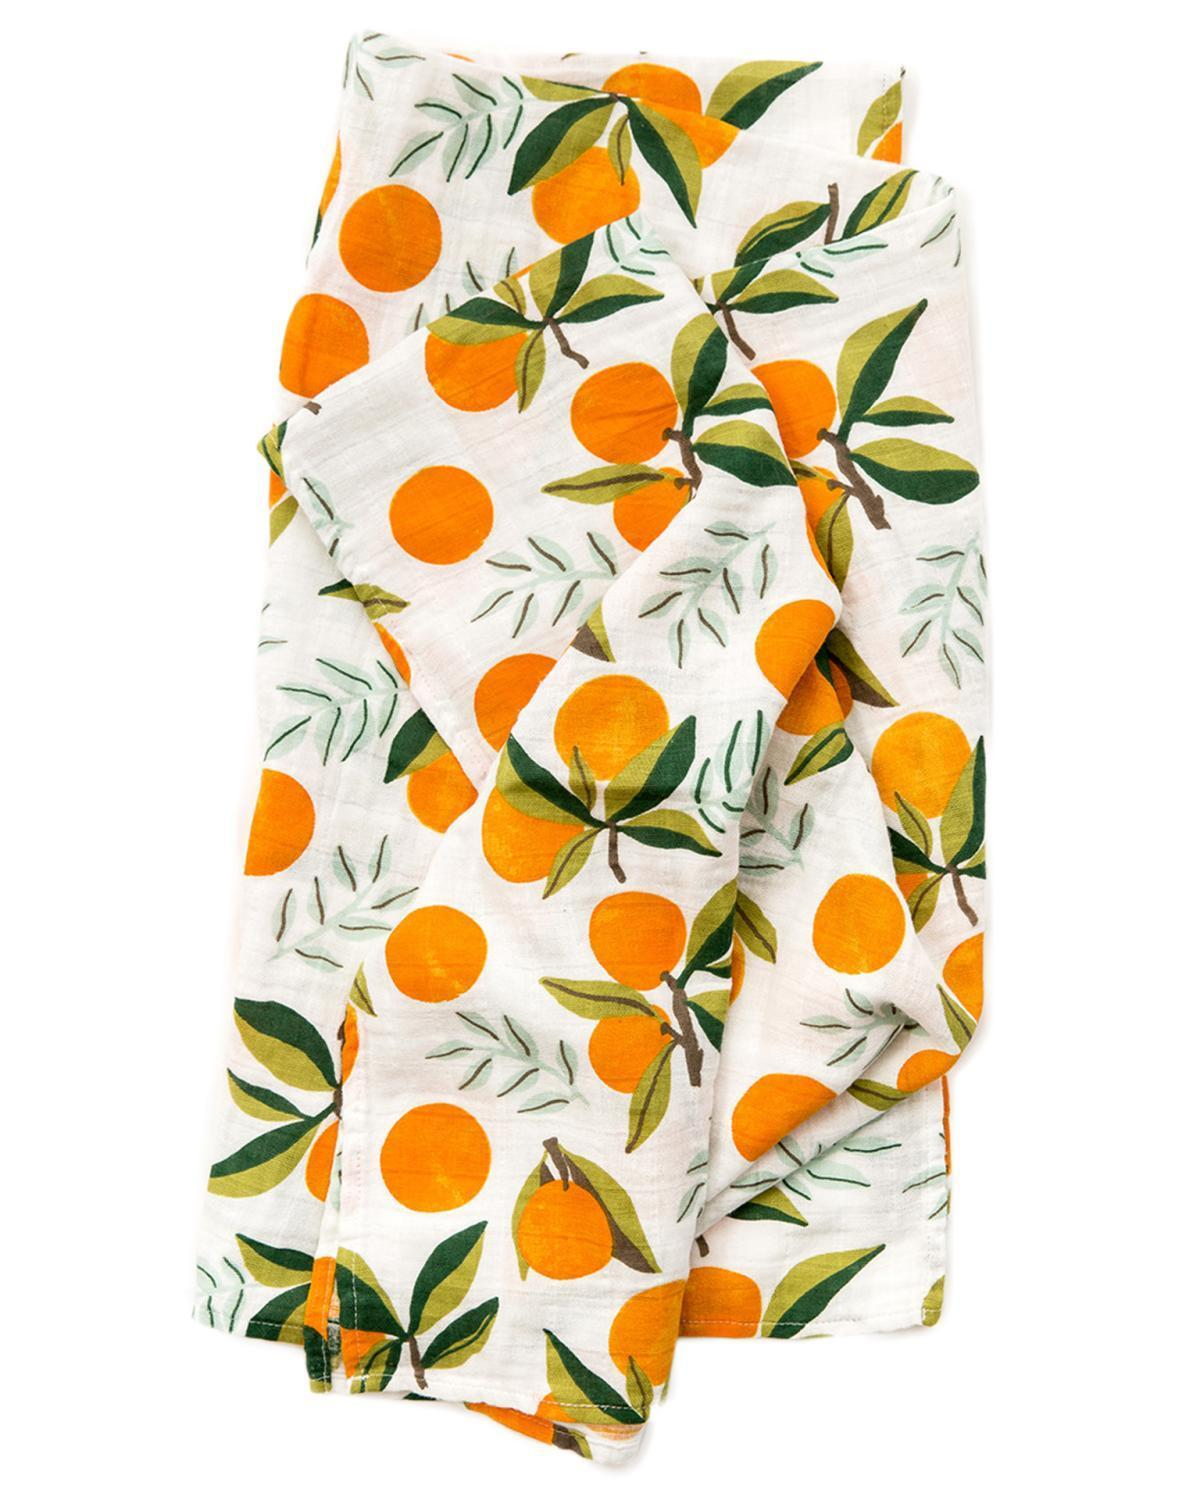 Little clementine kids baby accessories Clementine Swaddle